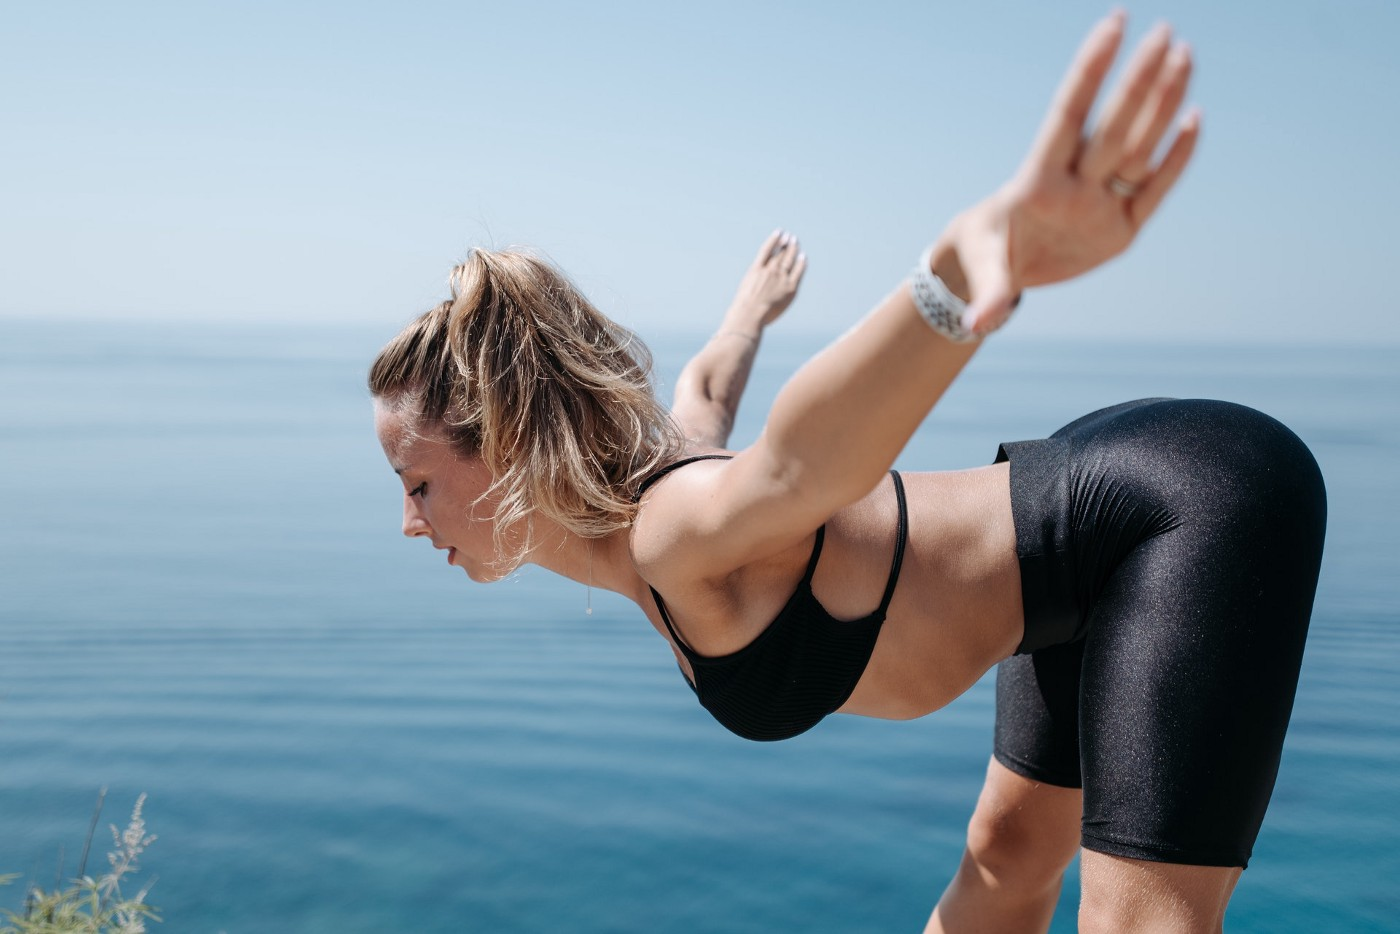 Woman in yoga pose at the beach.